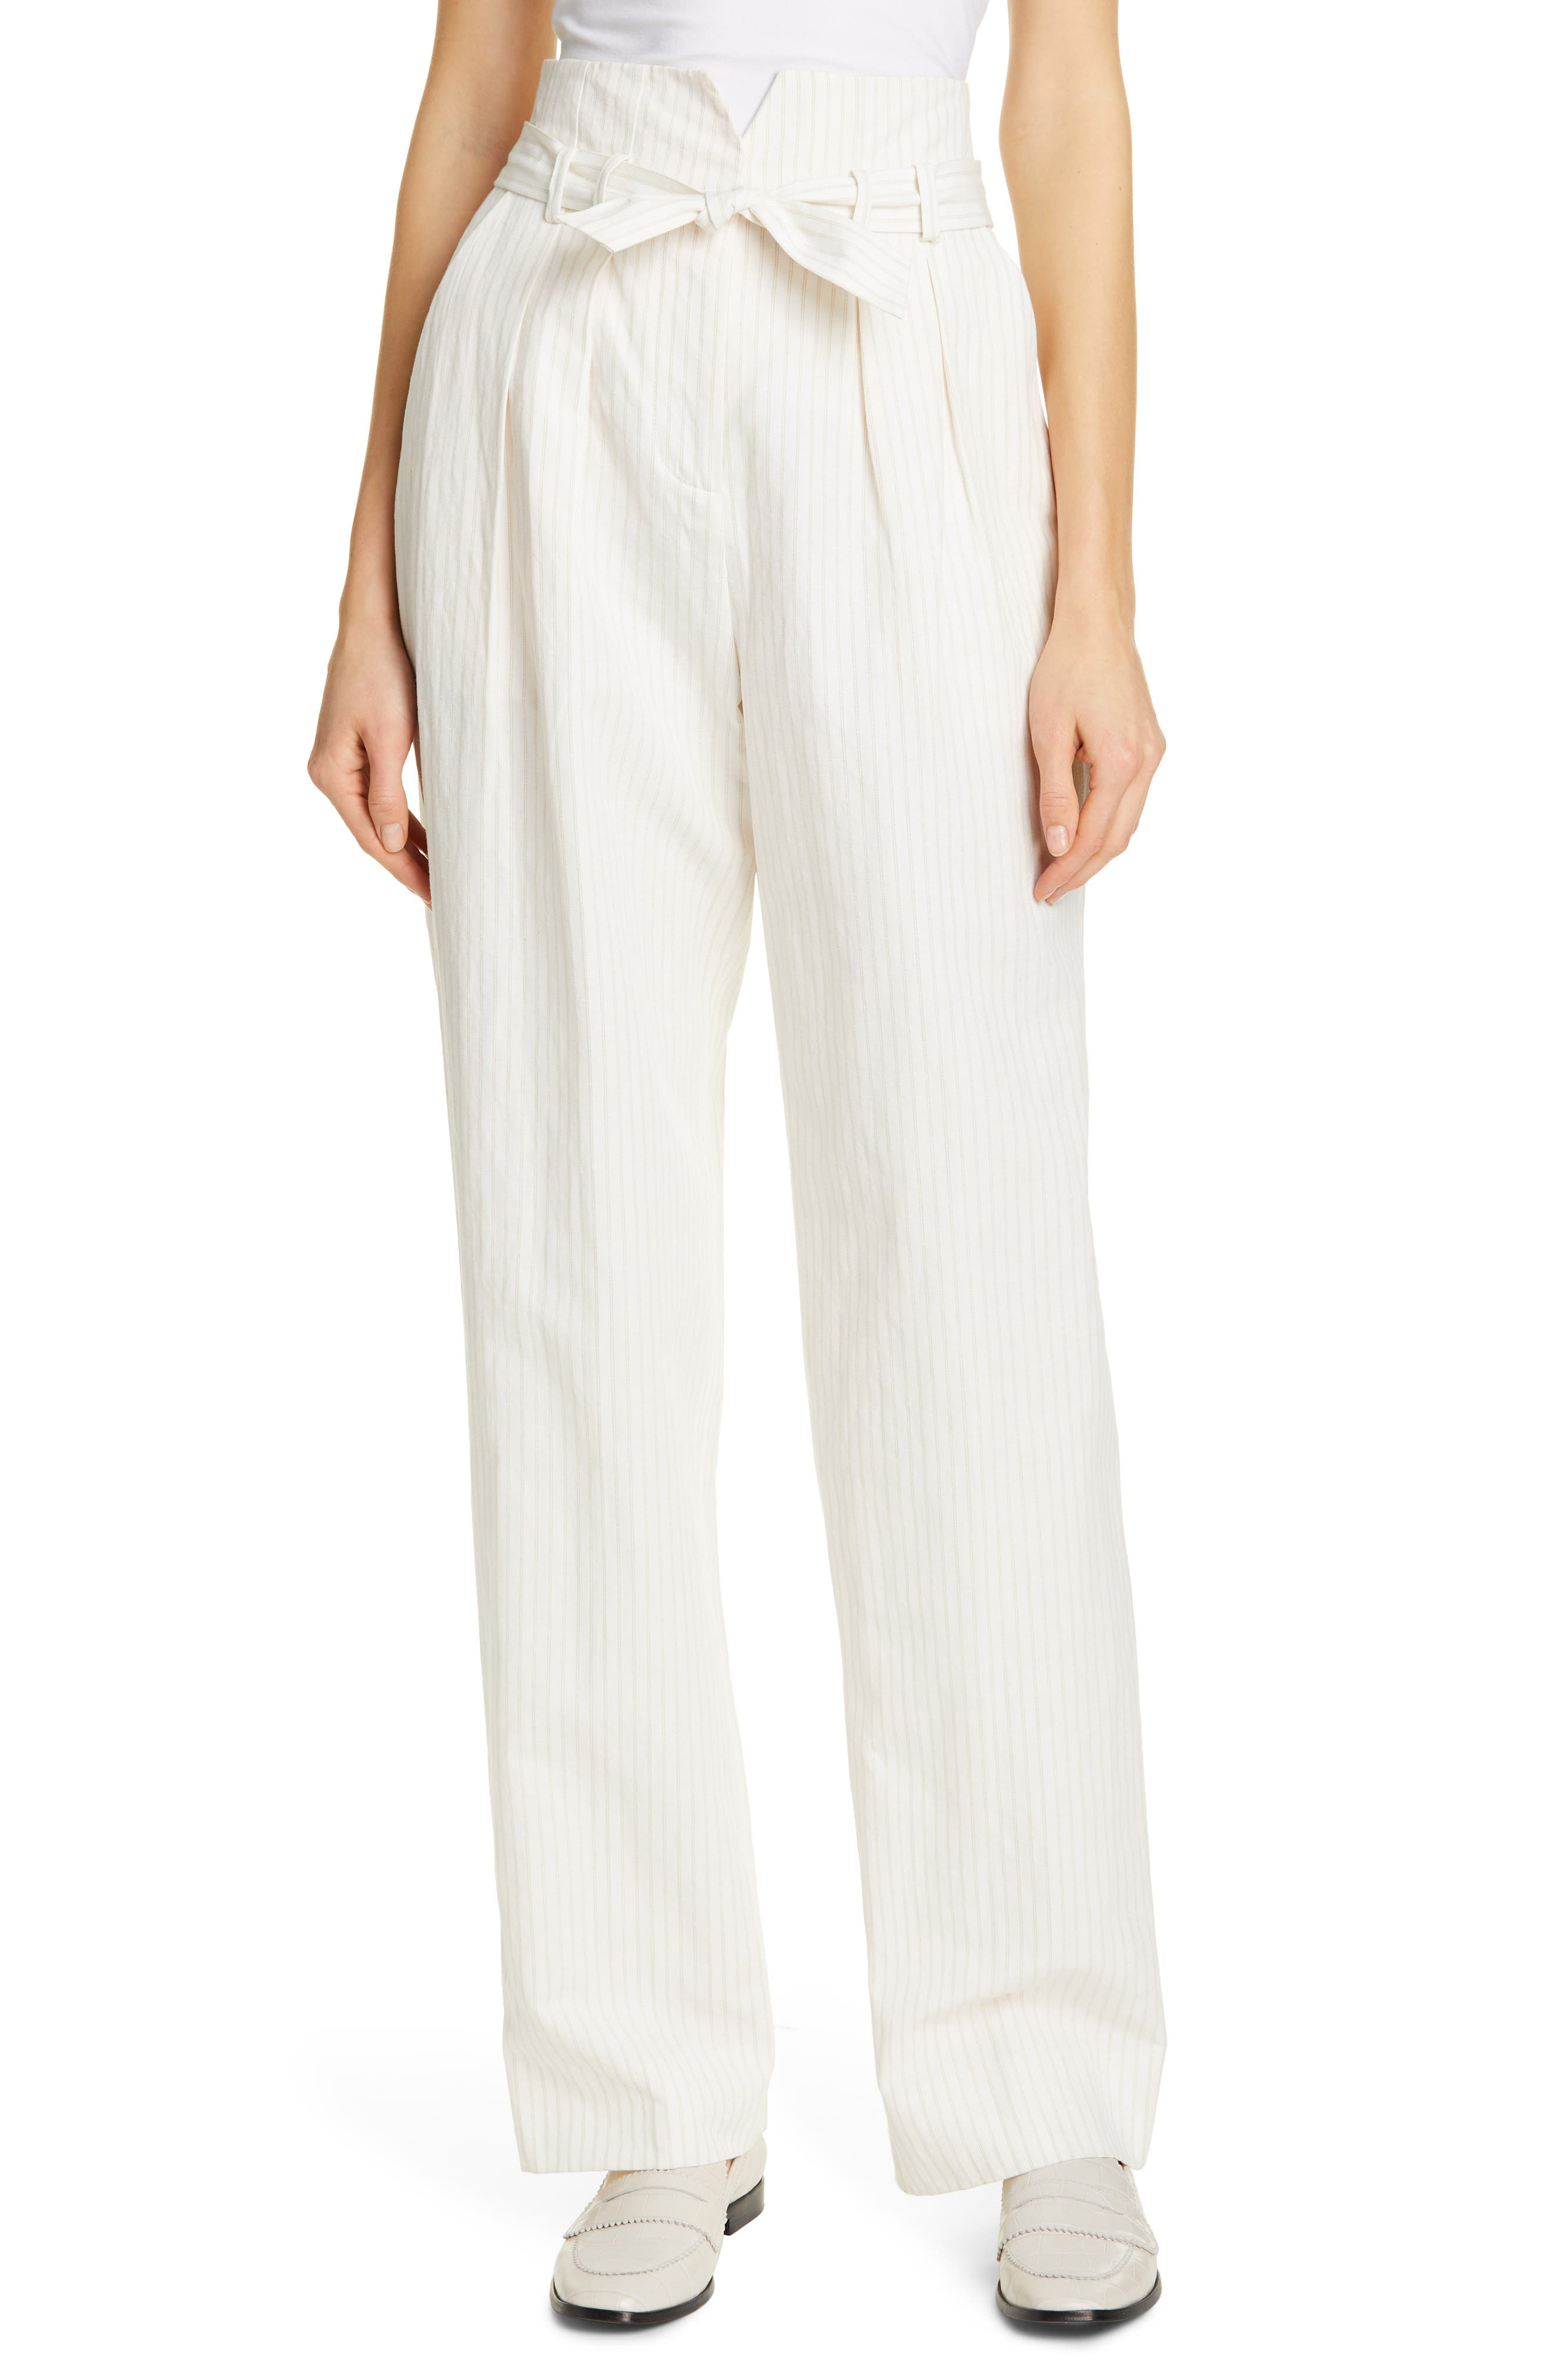 REBECCA TAYLOR, Pinstripe Belted Wide Leg Pants, Main thumbnail 1, color, SNOW COMBO